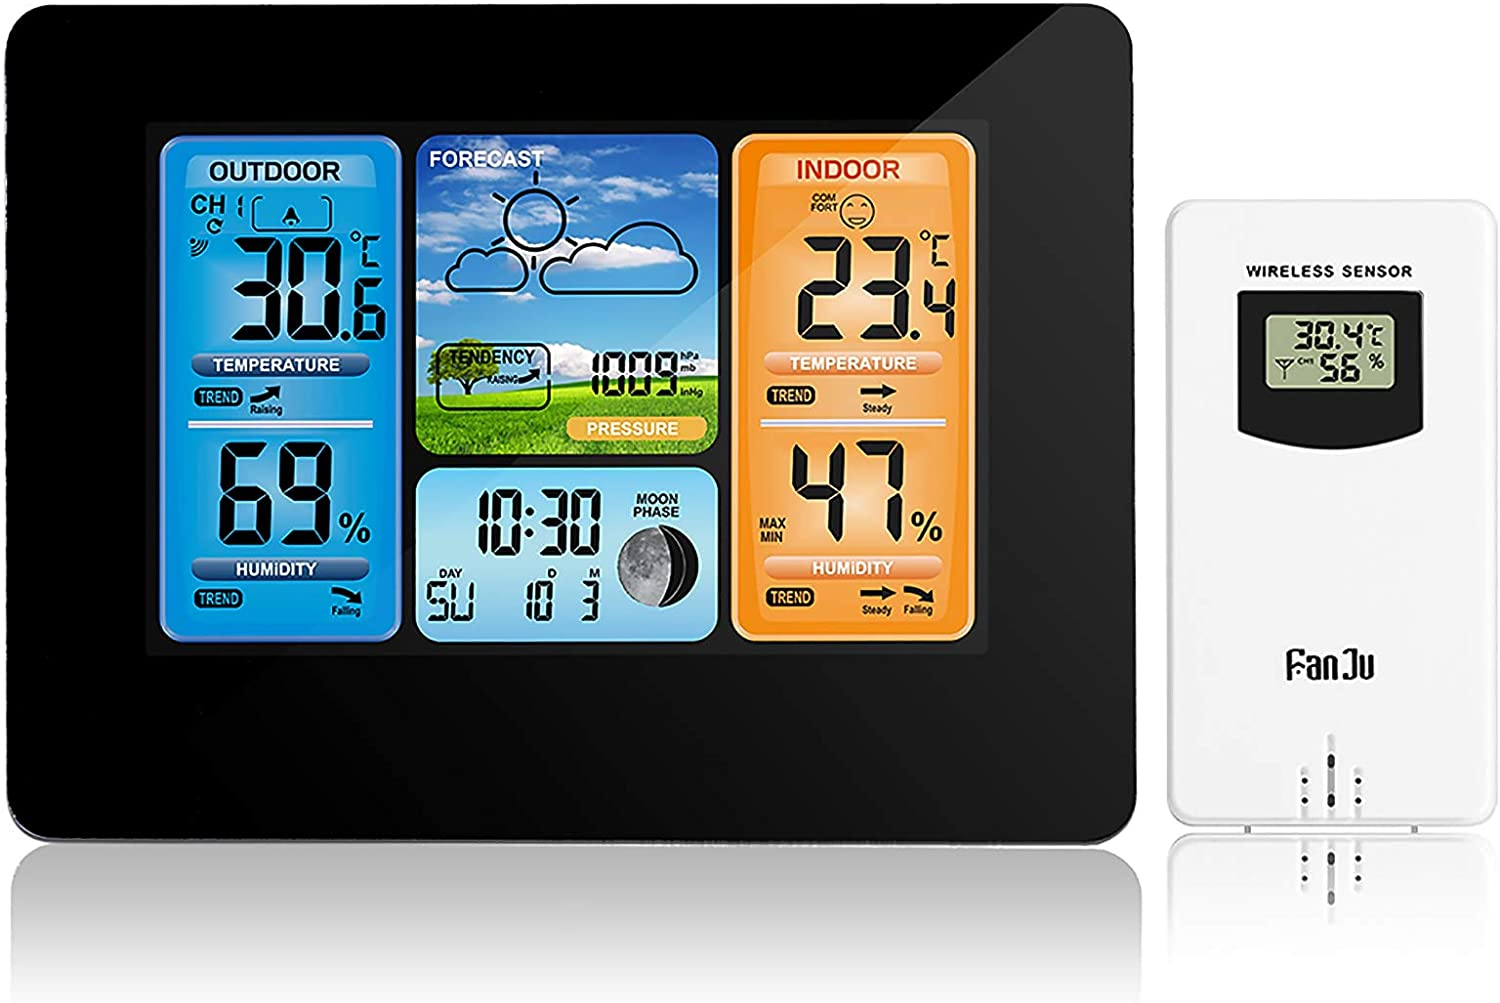 Home Weather Stations Wireless Finally popular brand For Color Indoor New products, world's highest quality popular! Outdoor